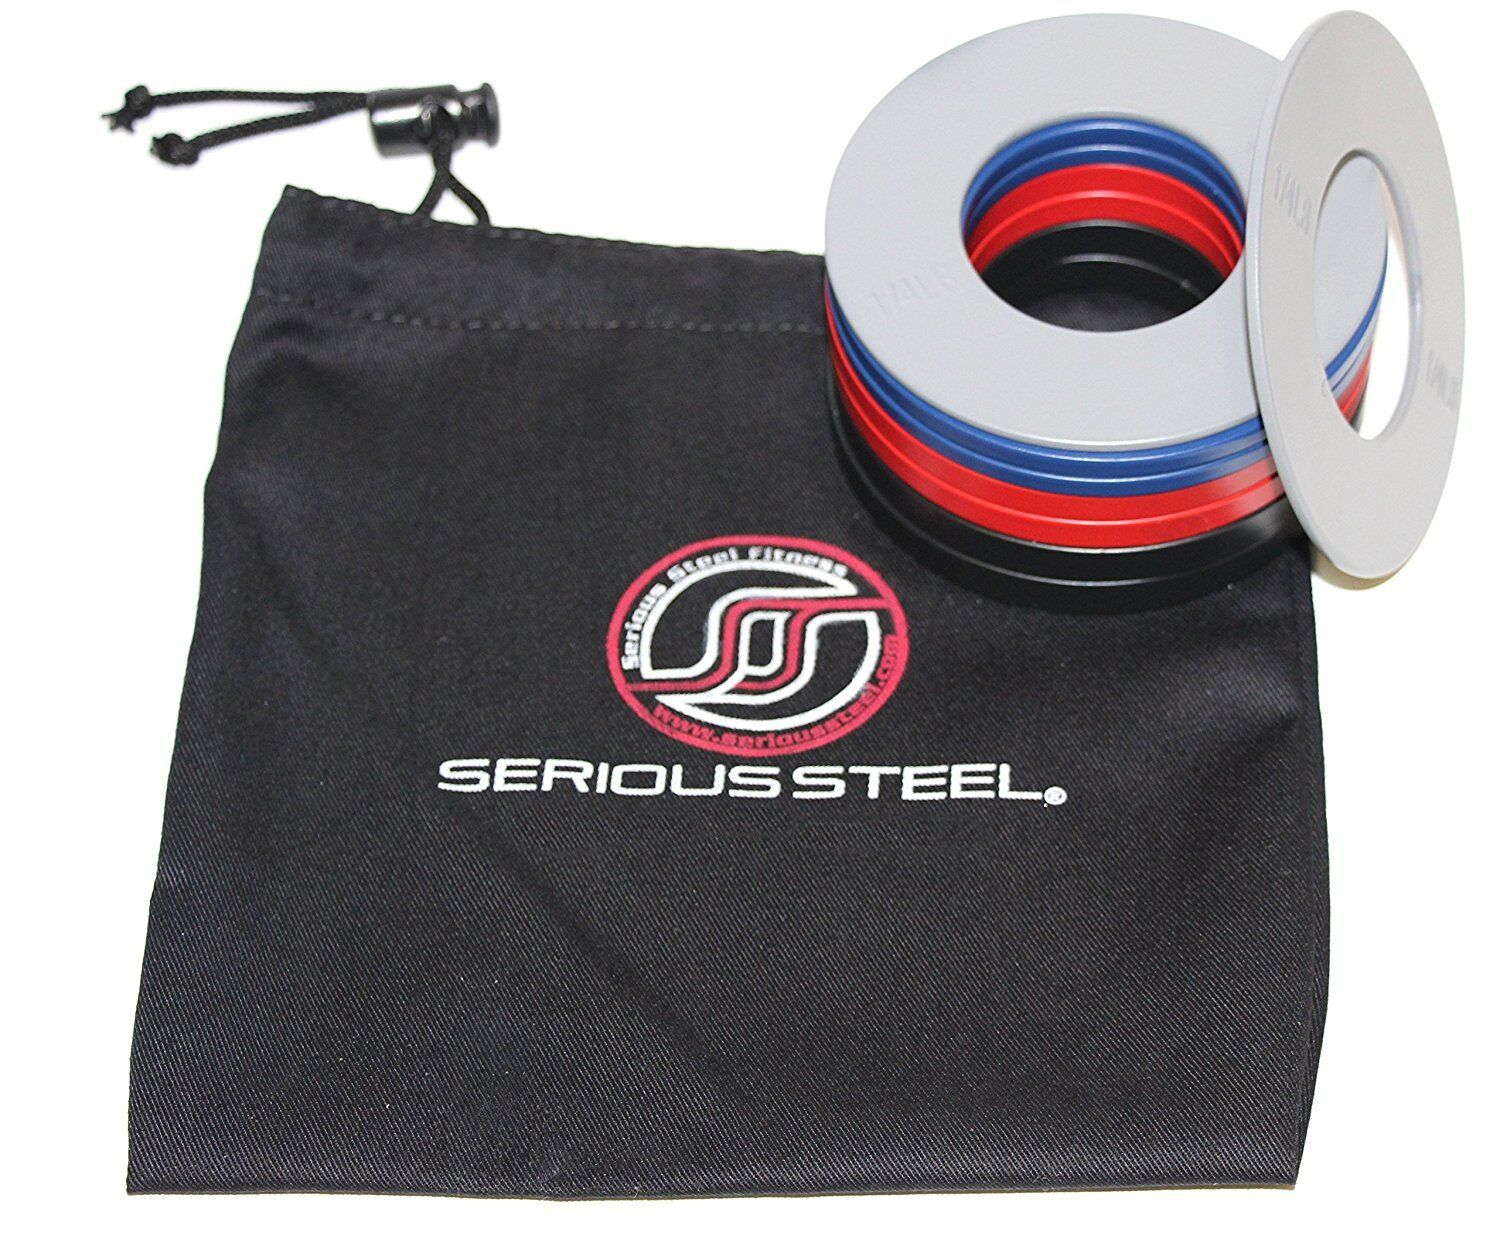 Serious Steel Fitness Fractional Plates  (W  Bag)   Microloading Steel Plates  take up to 70% off